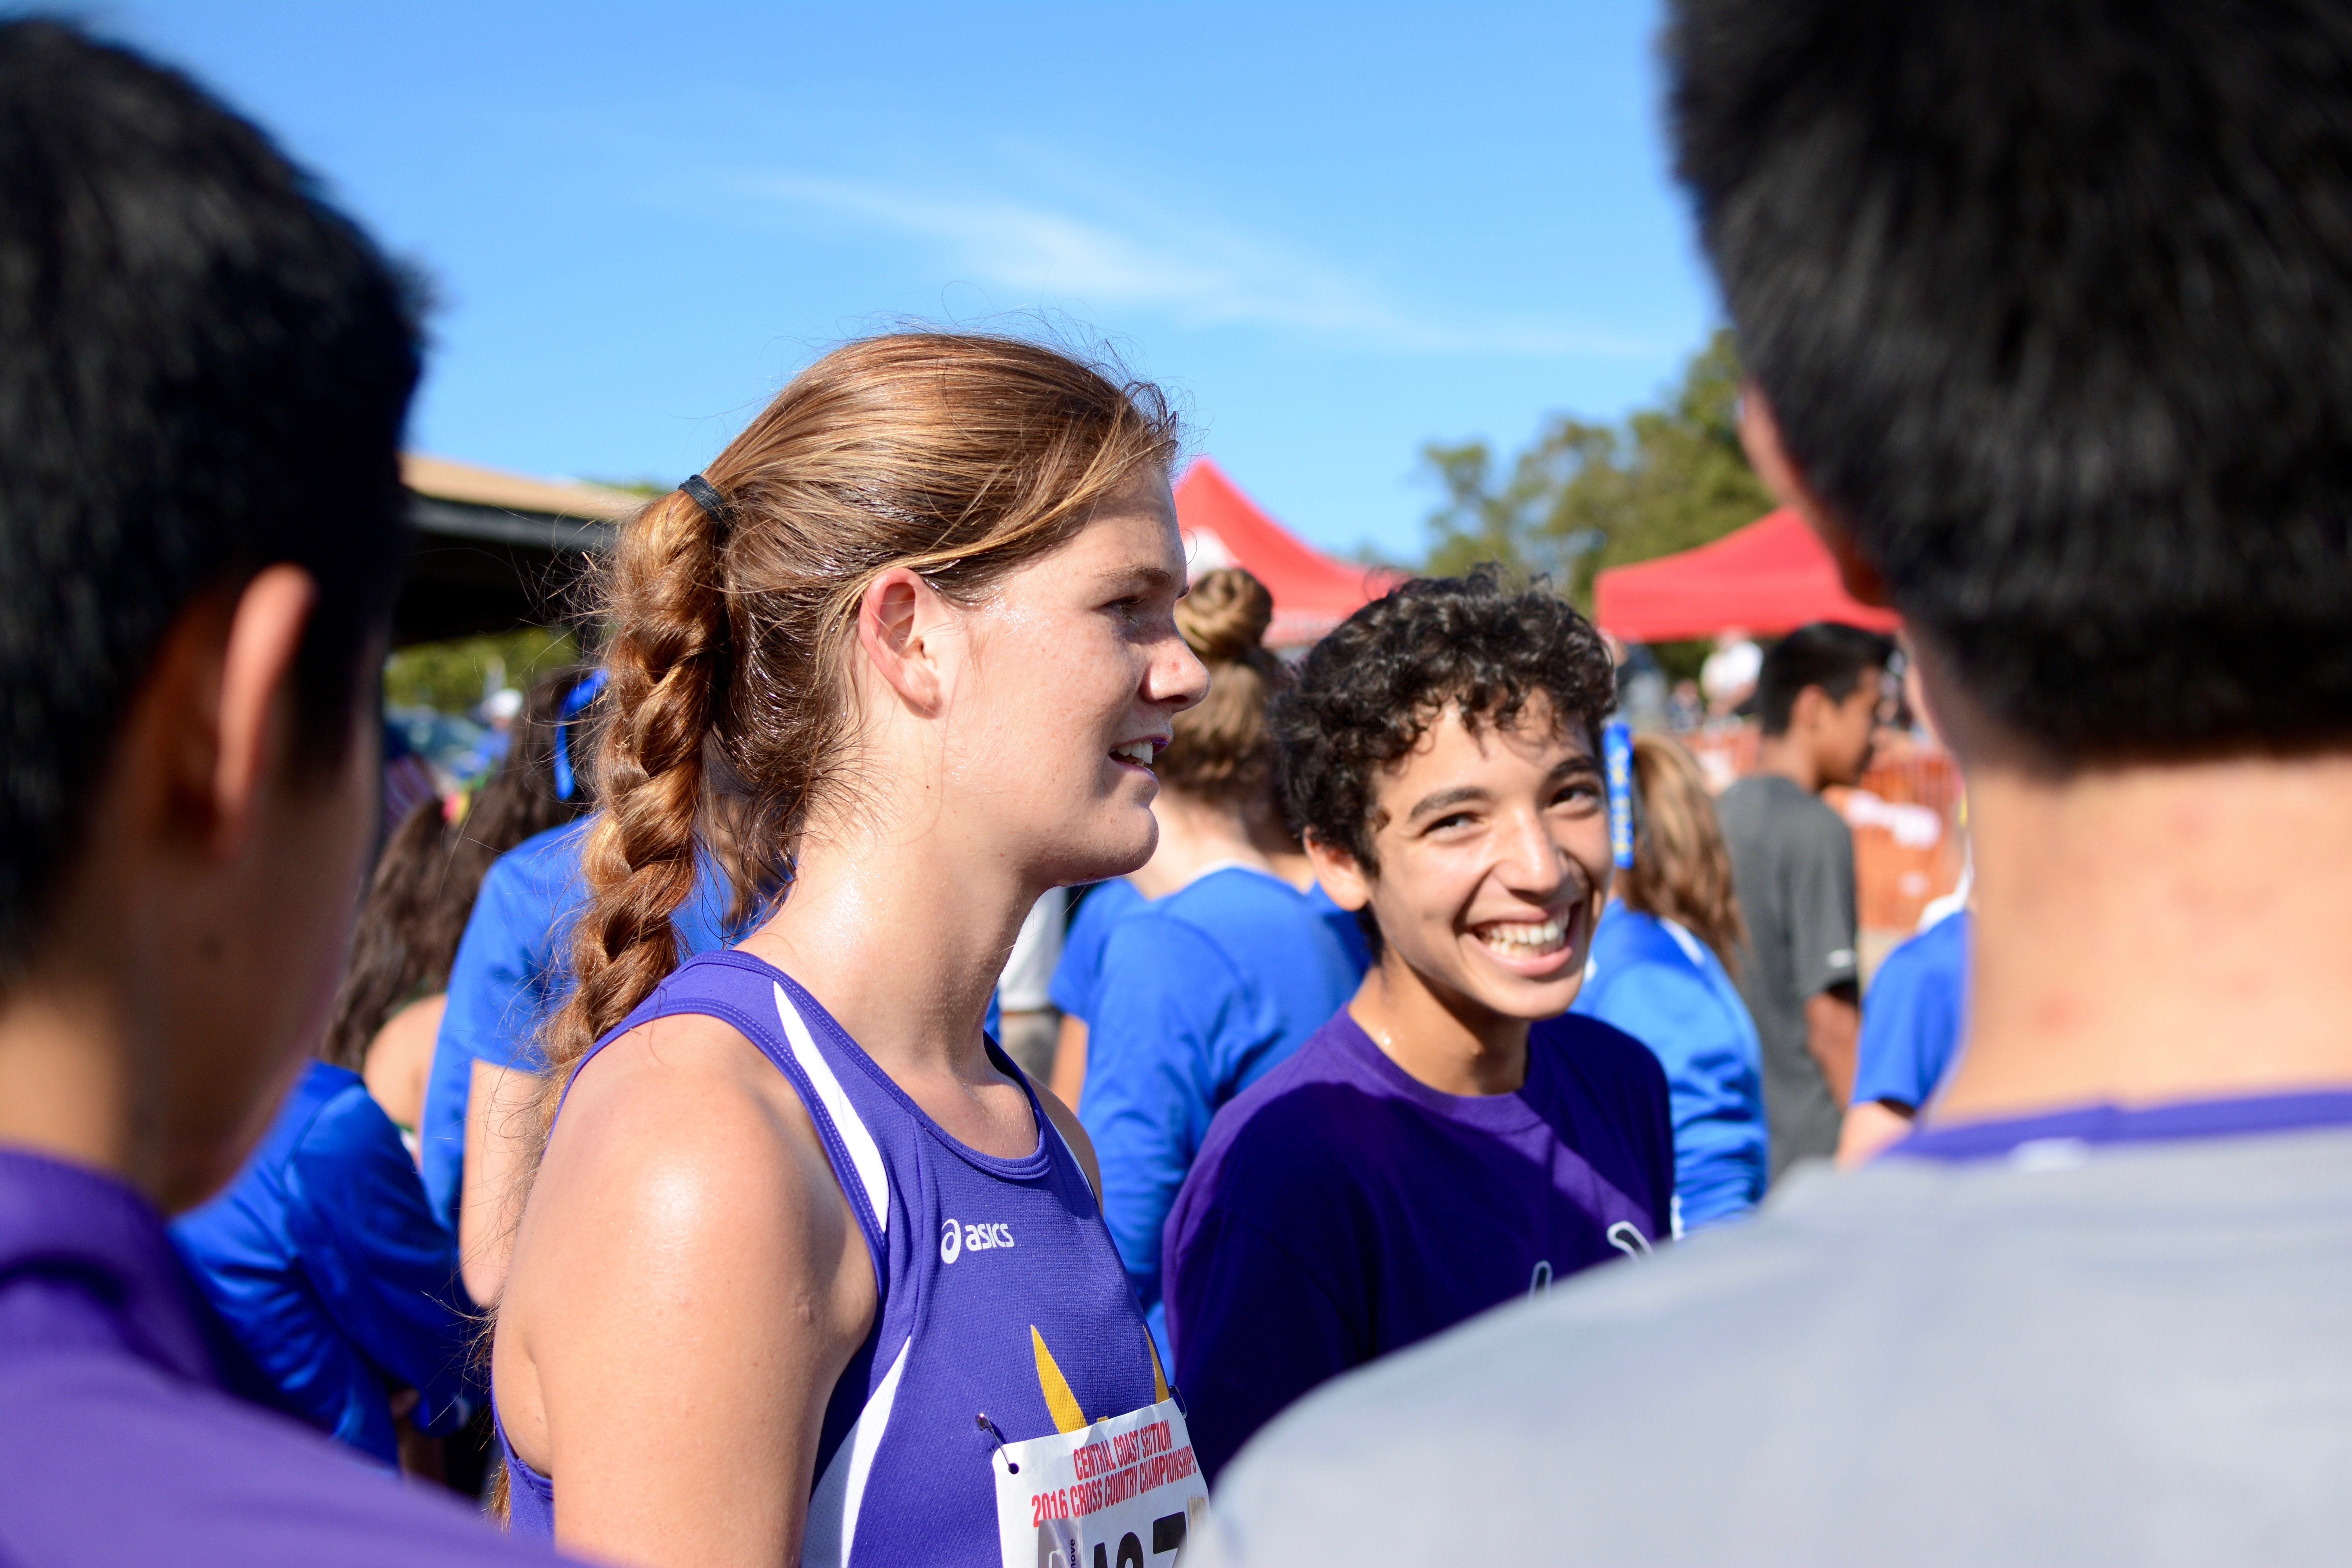 Cross country: CCS at Crystal Springs XC Course